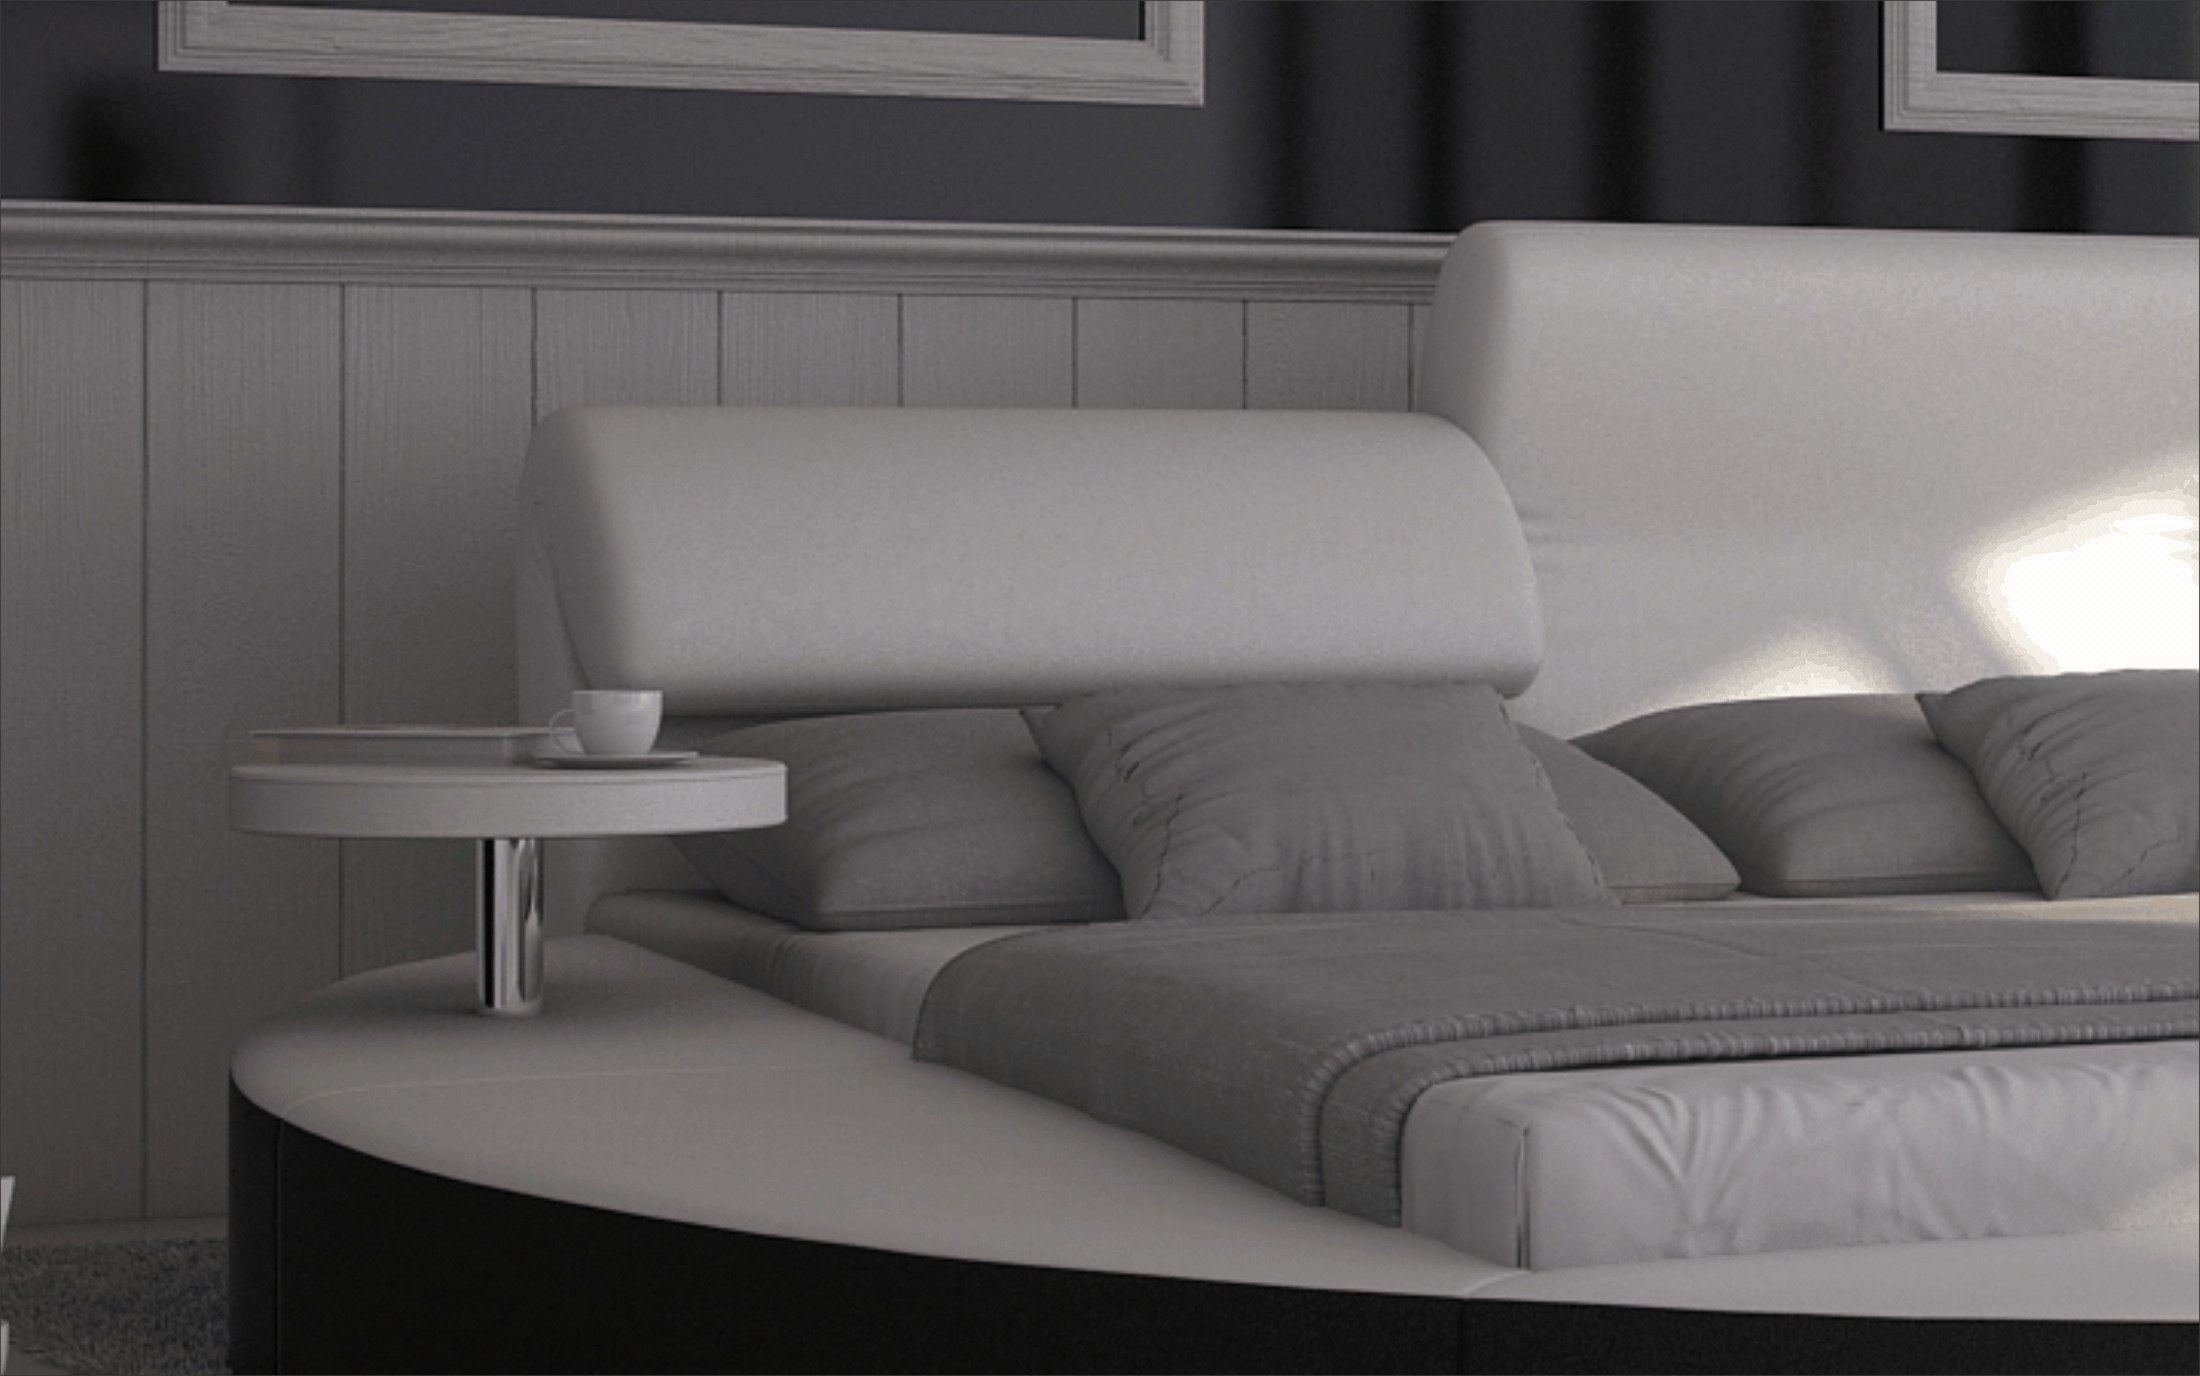 wasserbett rundbett napoli komplett set dualsystem design kaufen bei. Black Bedroom Furniture Sets. Home Design Ideas